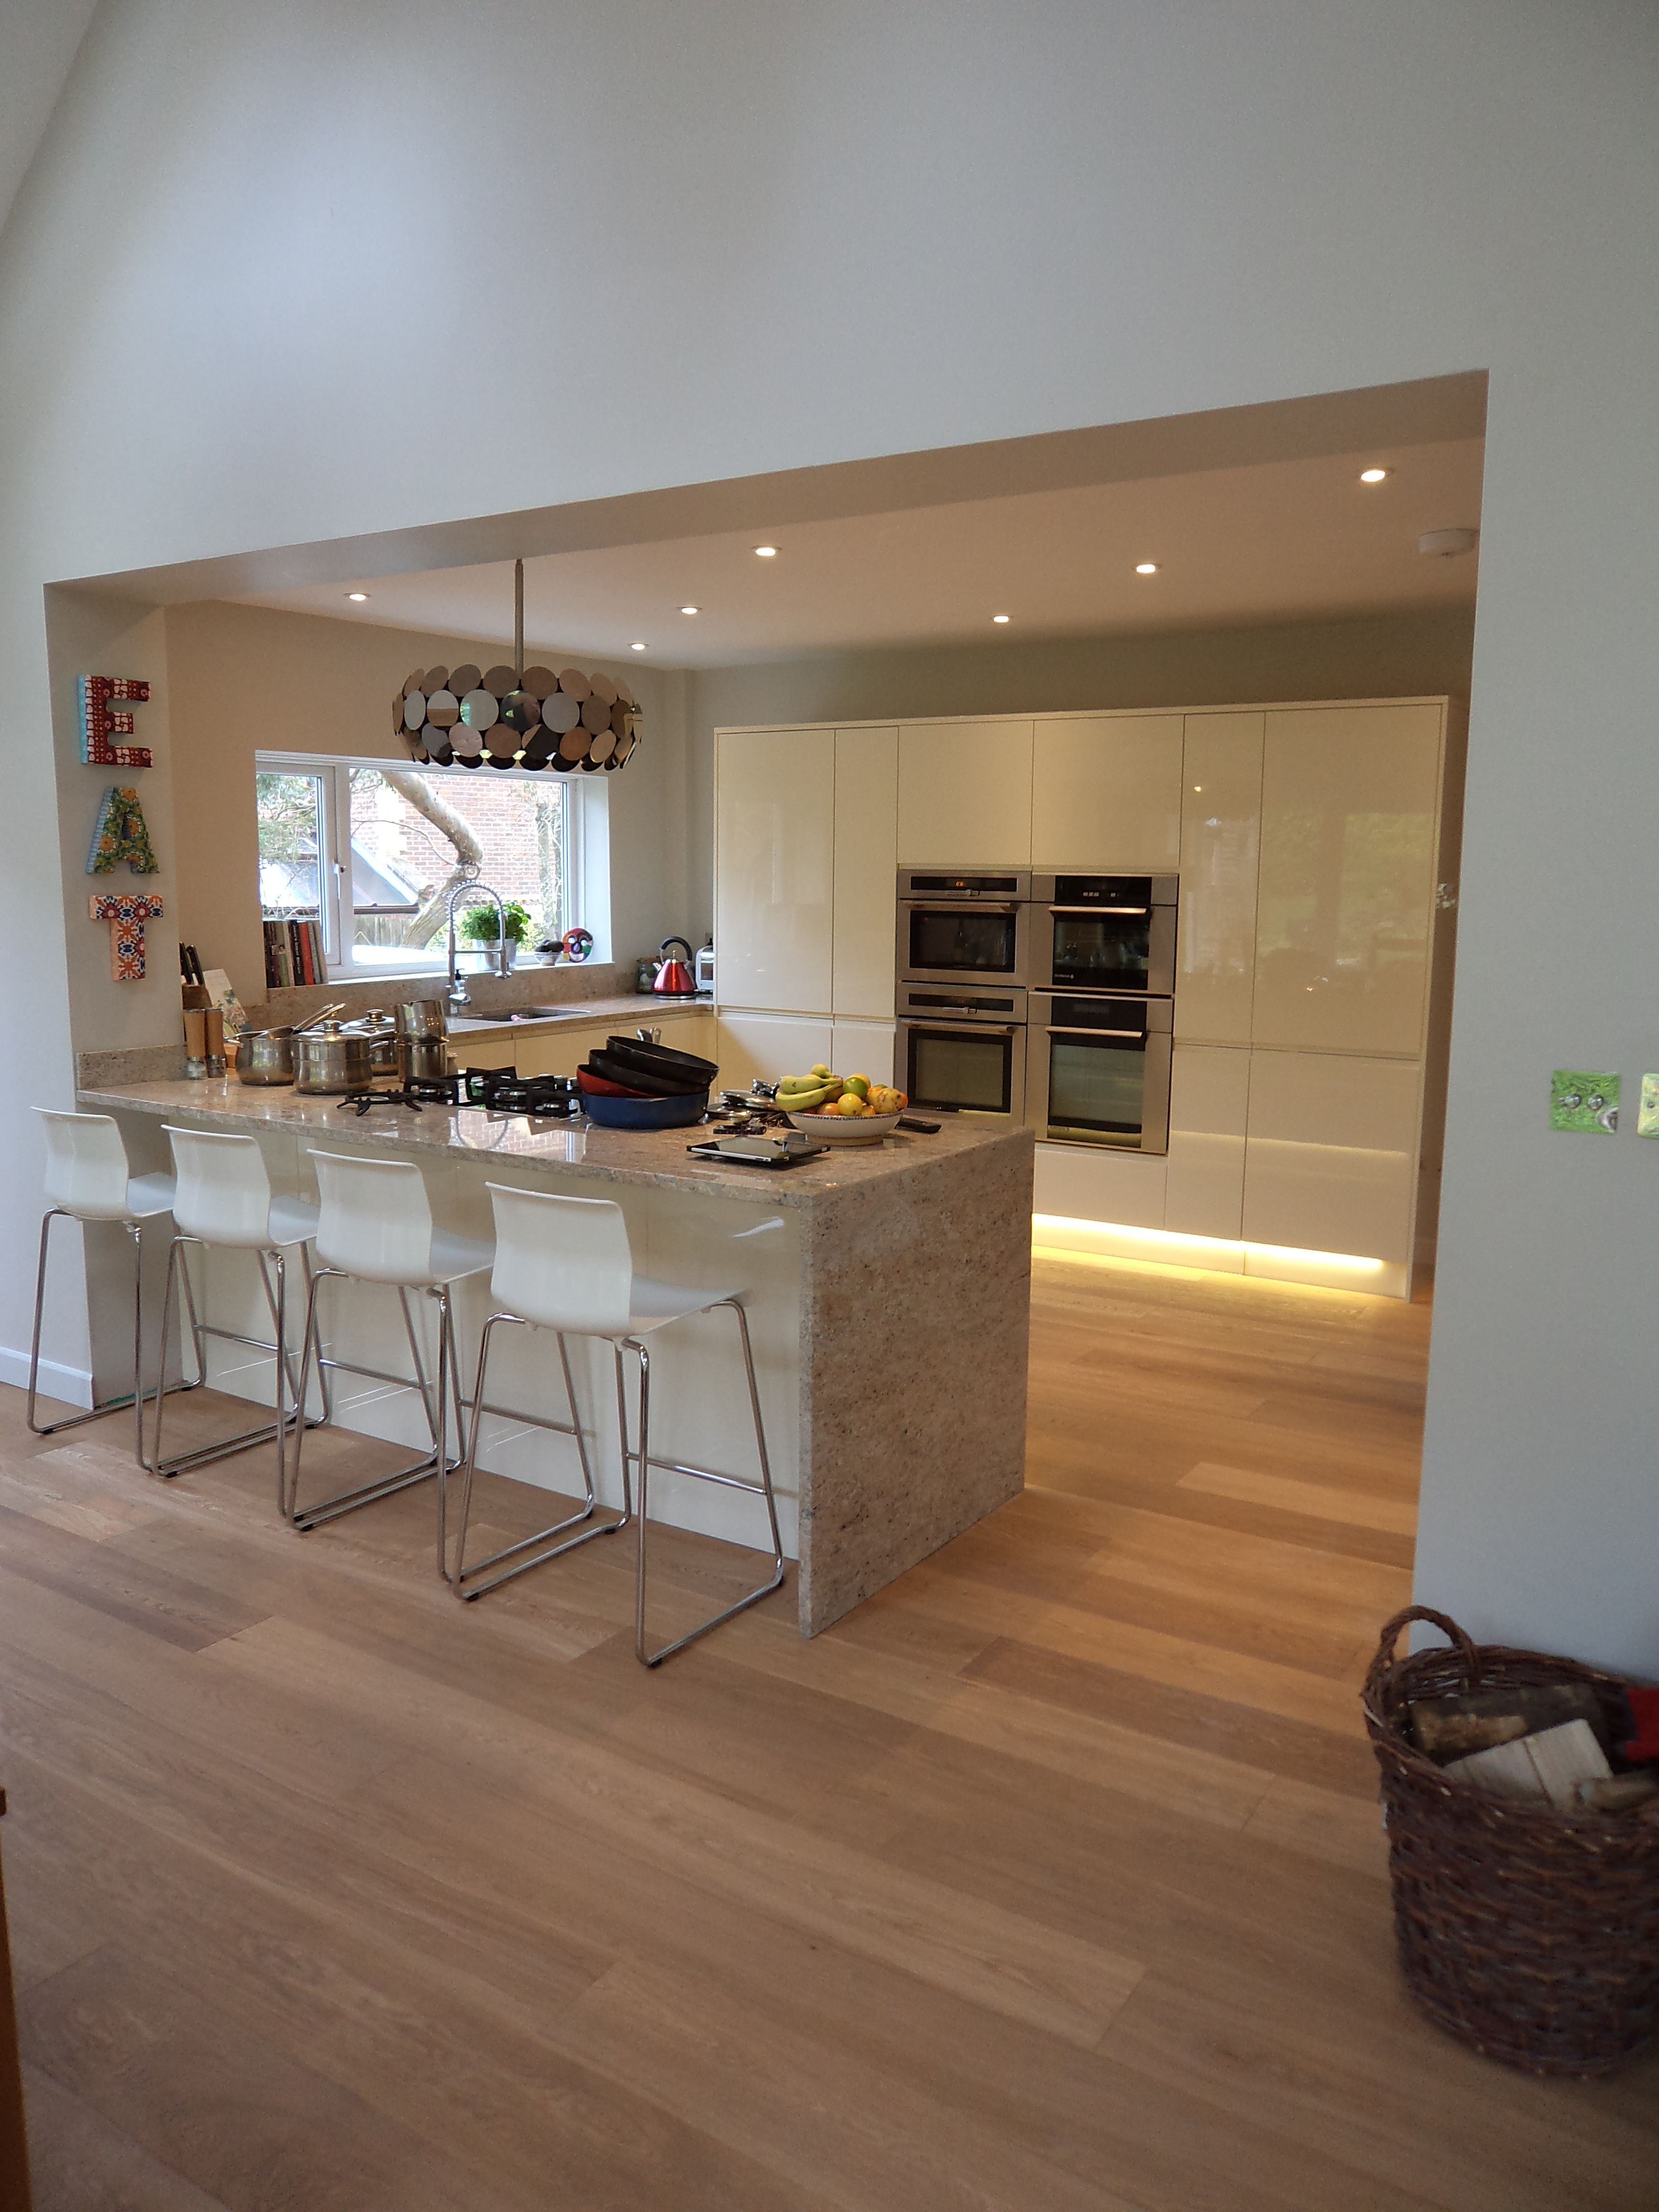 This stunning Handleless White Kitchen is perfect in this